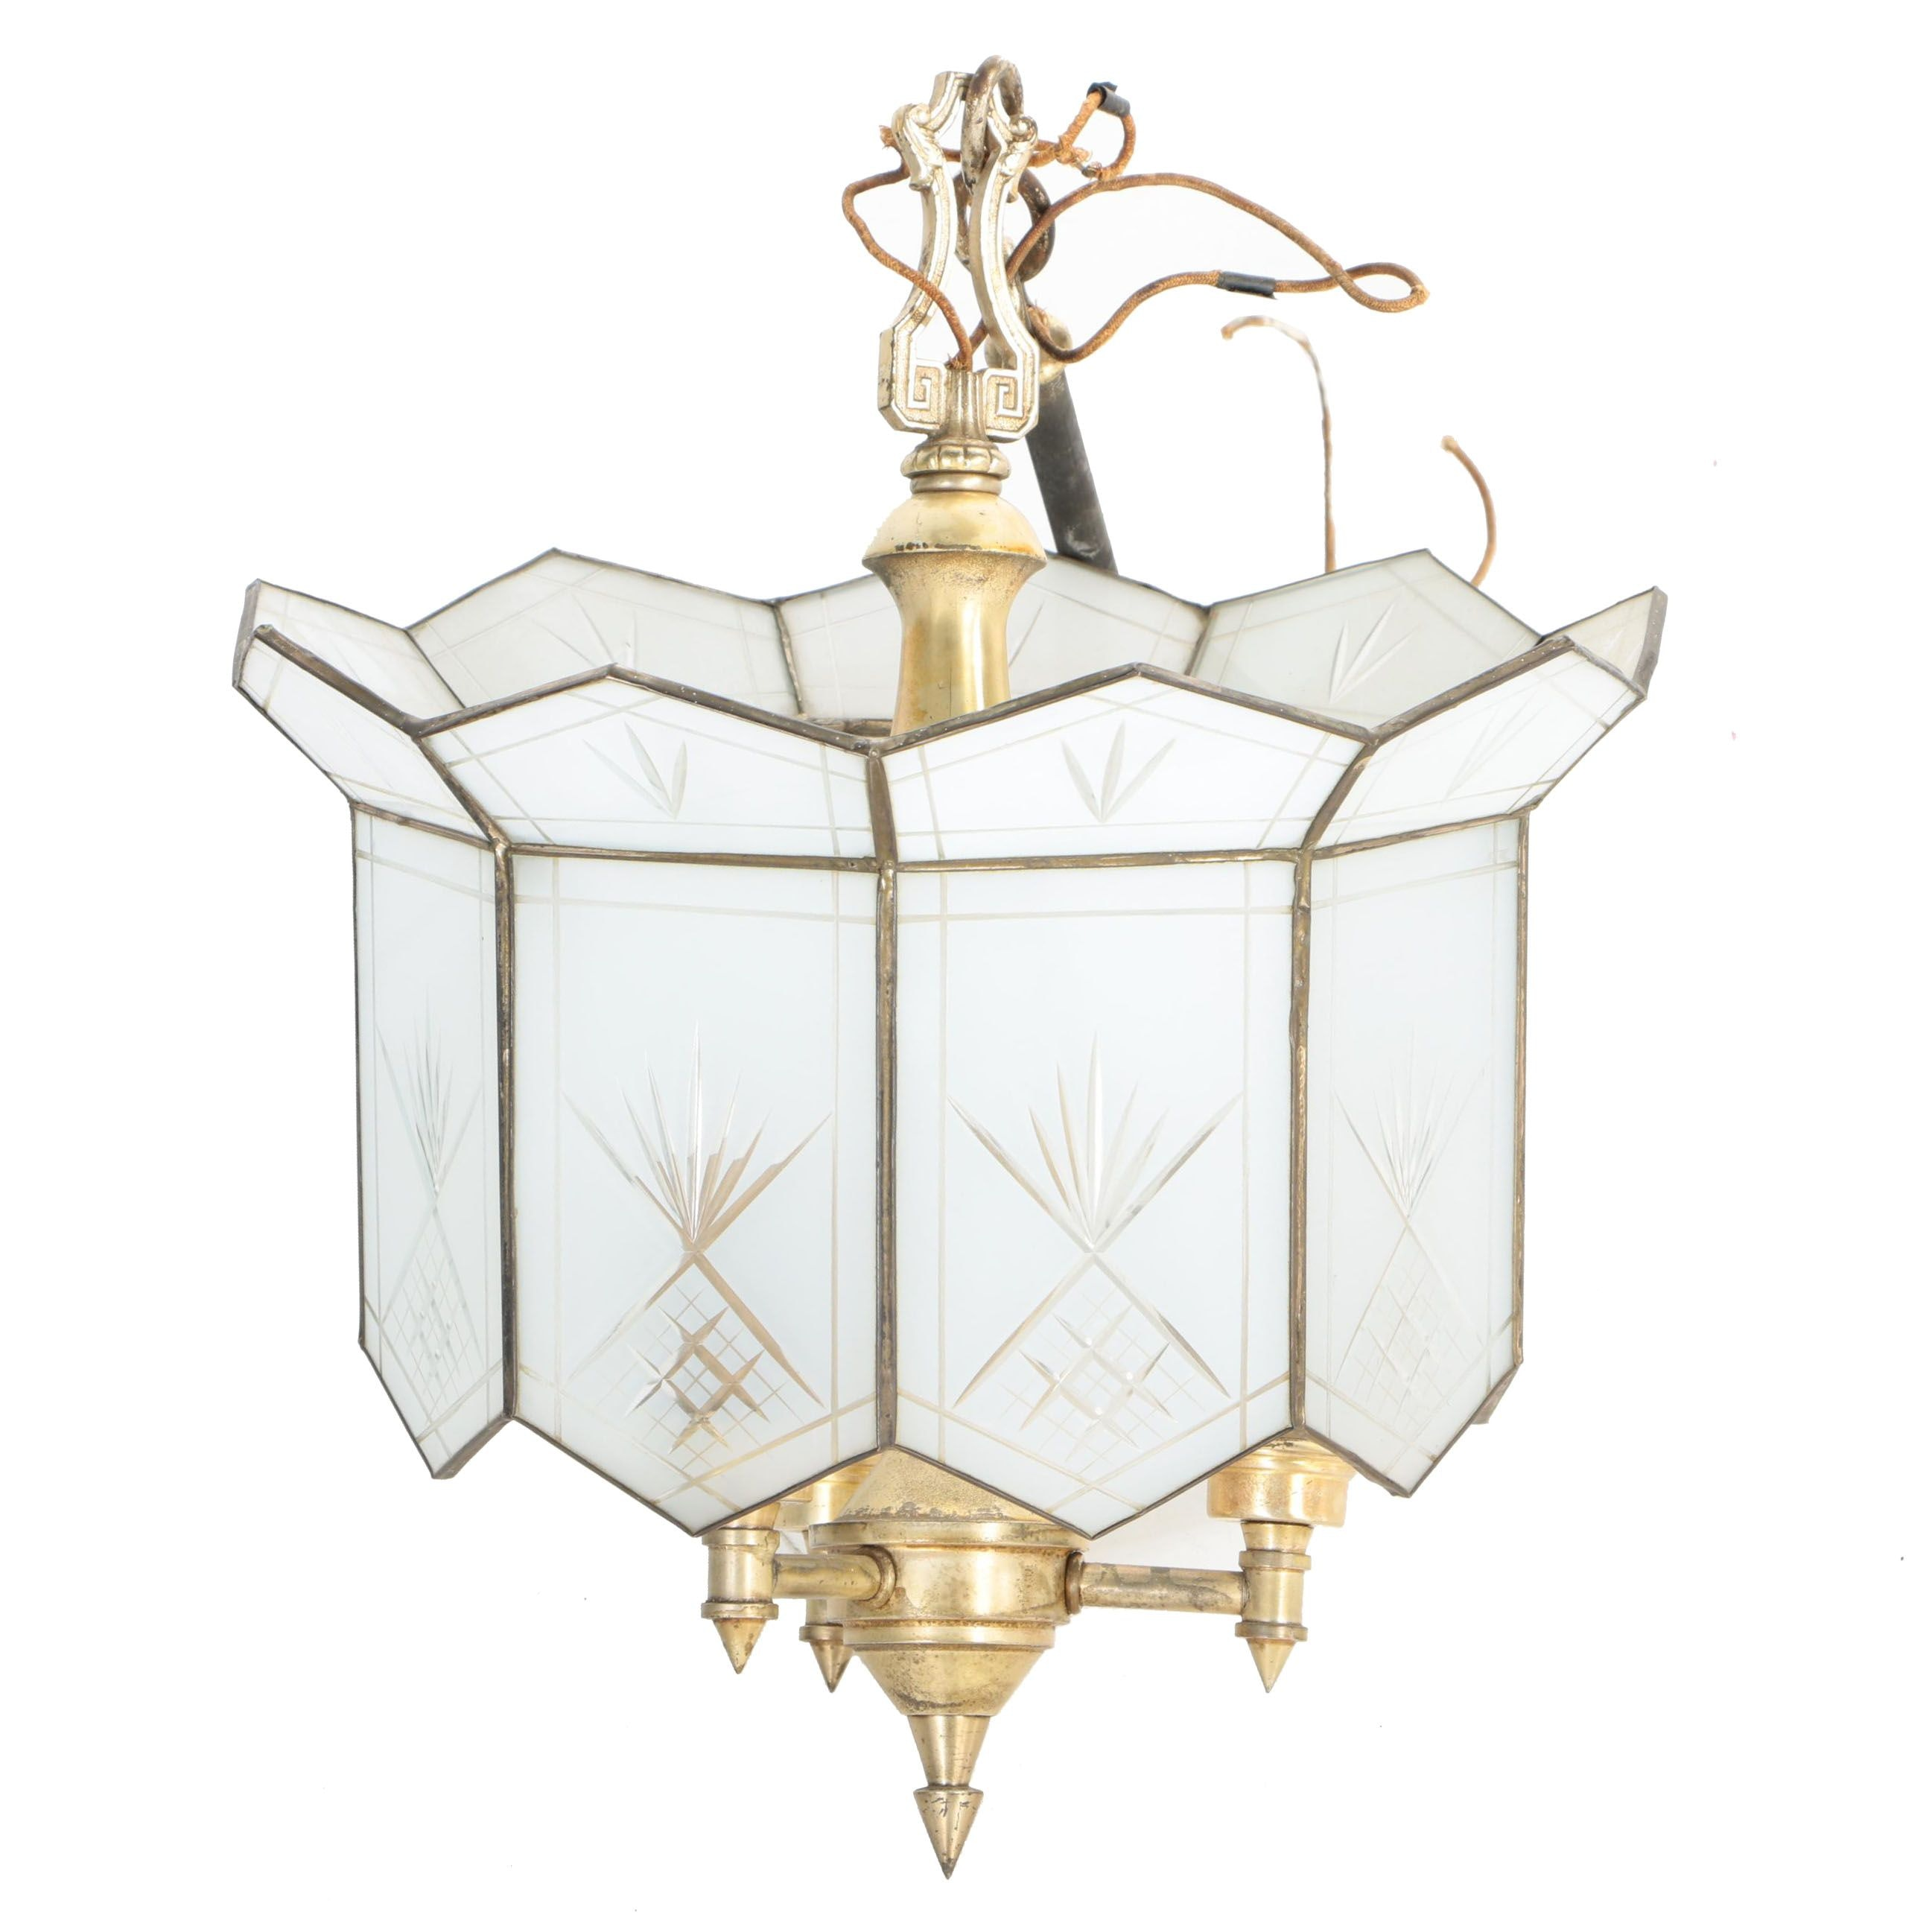 Brass Hanging Light Fixture with Frosted Glass Panels